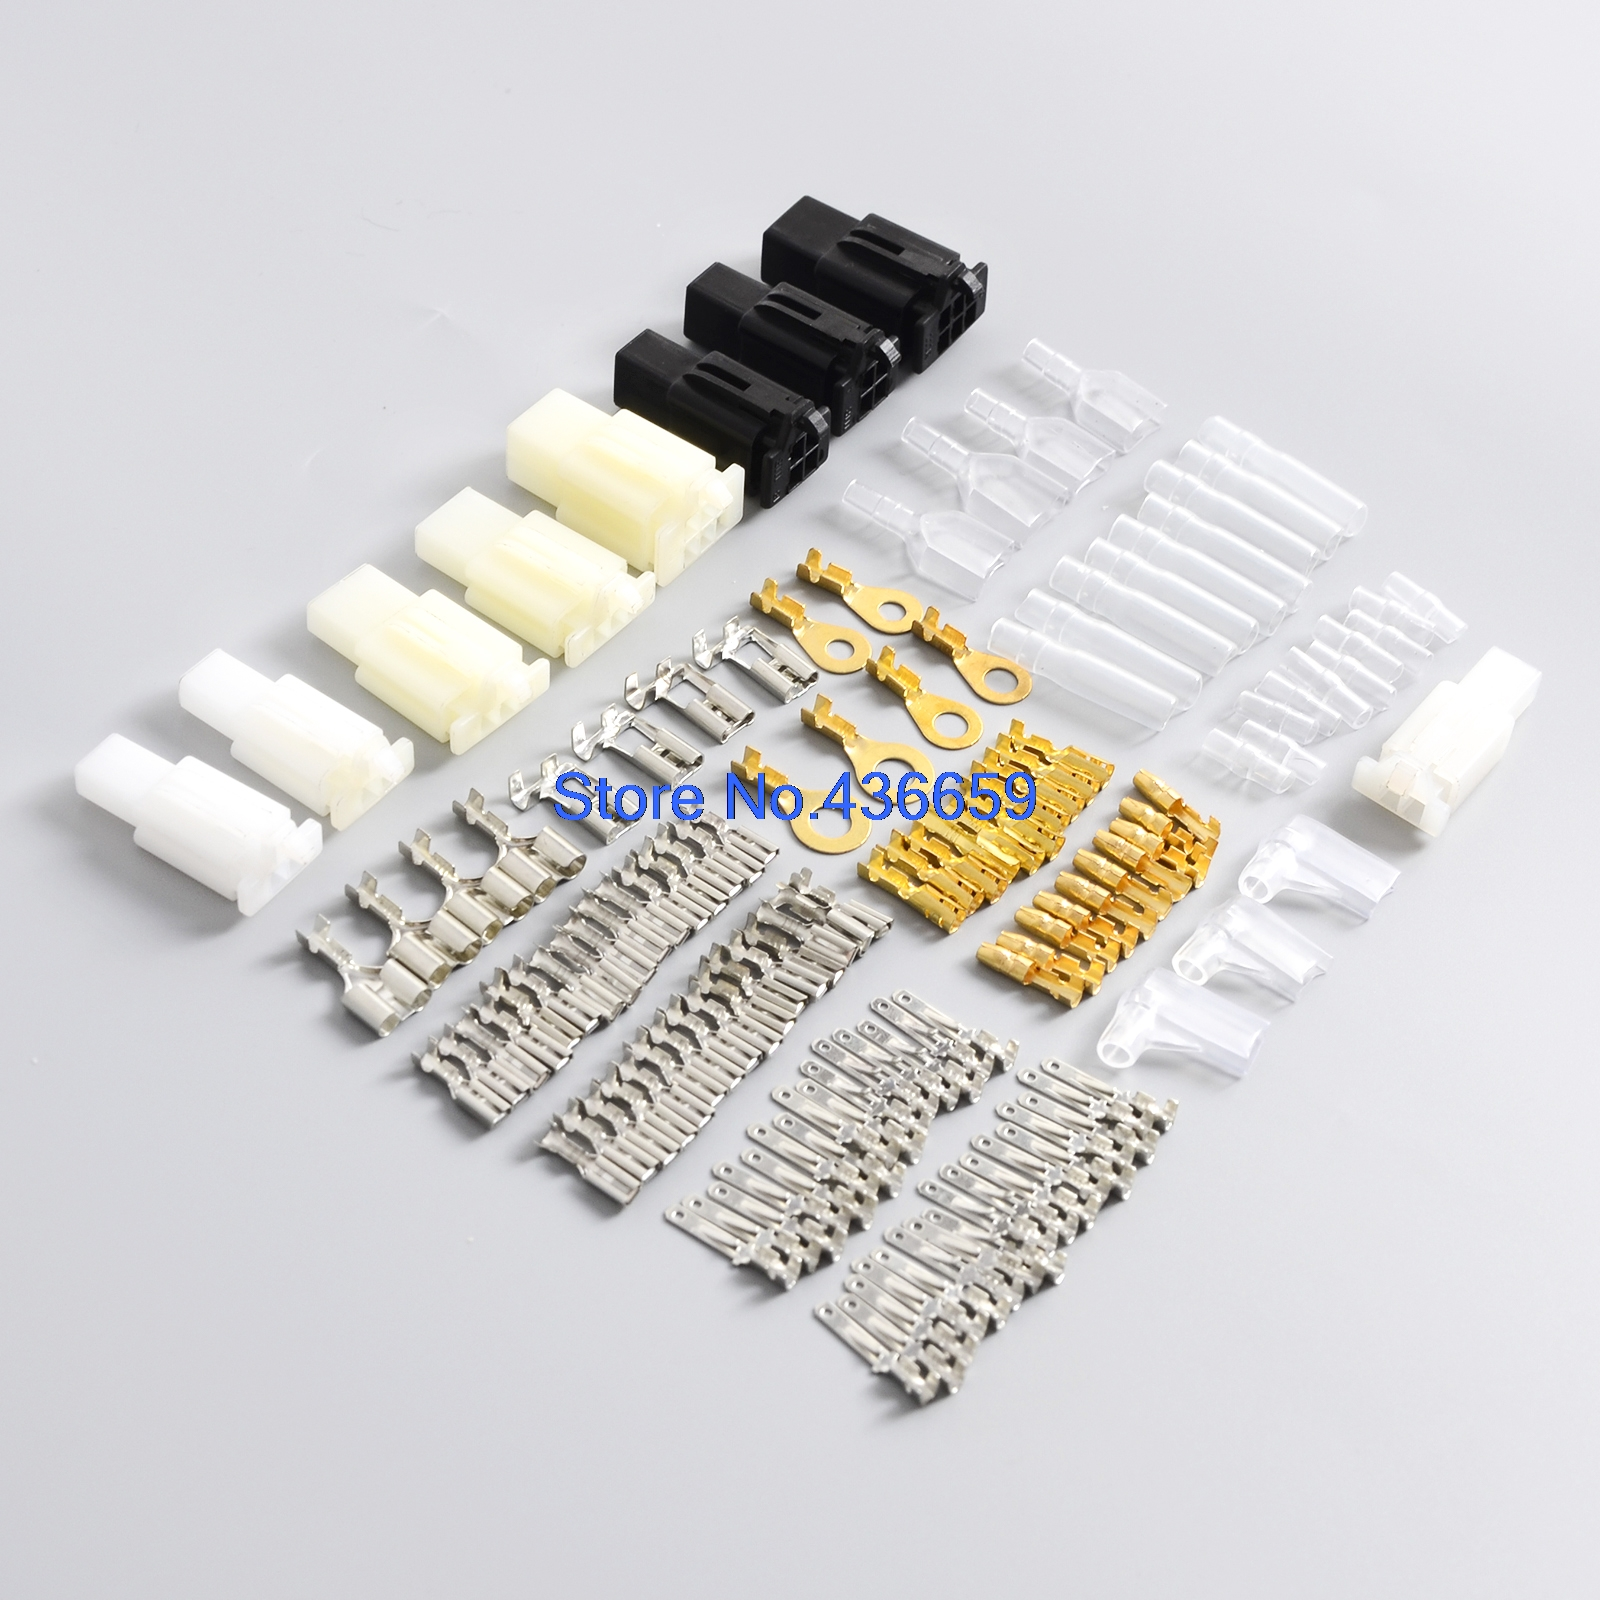 Motorcycle Connector Wiring Loom Automotive Harness Auto Terminal Insulation Repair Kit Pvc Covers Tin Plate Brass Terminals In Fuses From Automobiles